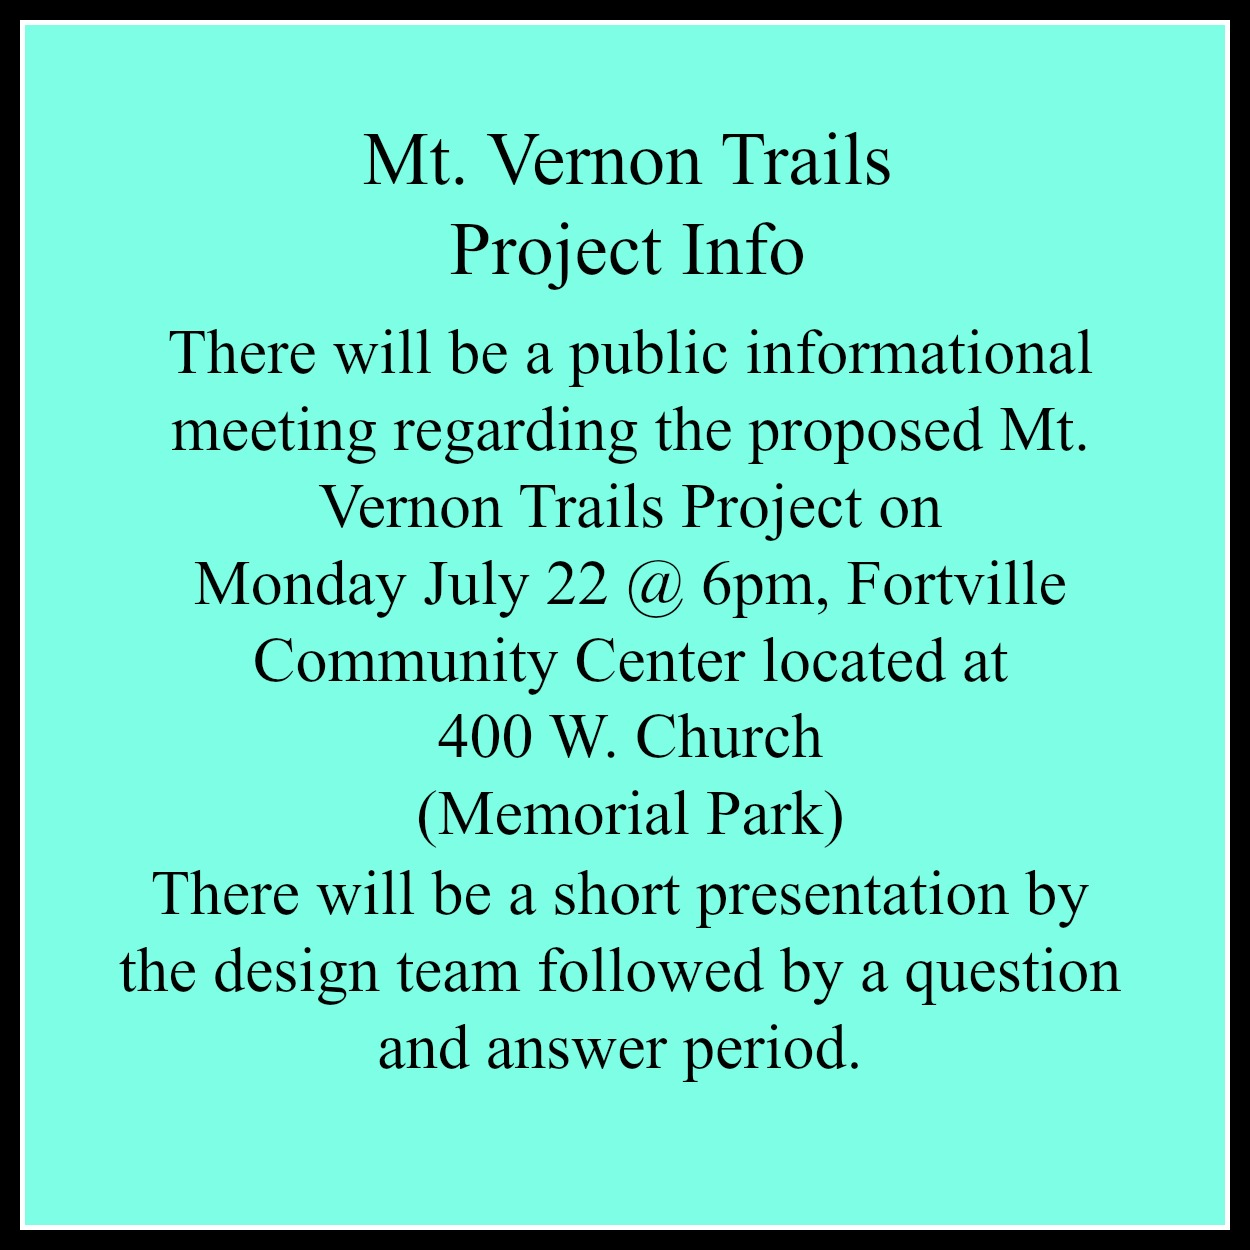 Trail project meeting notice.jpg